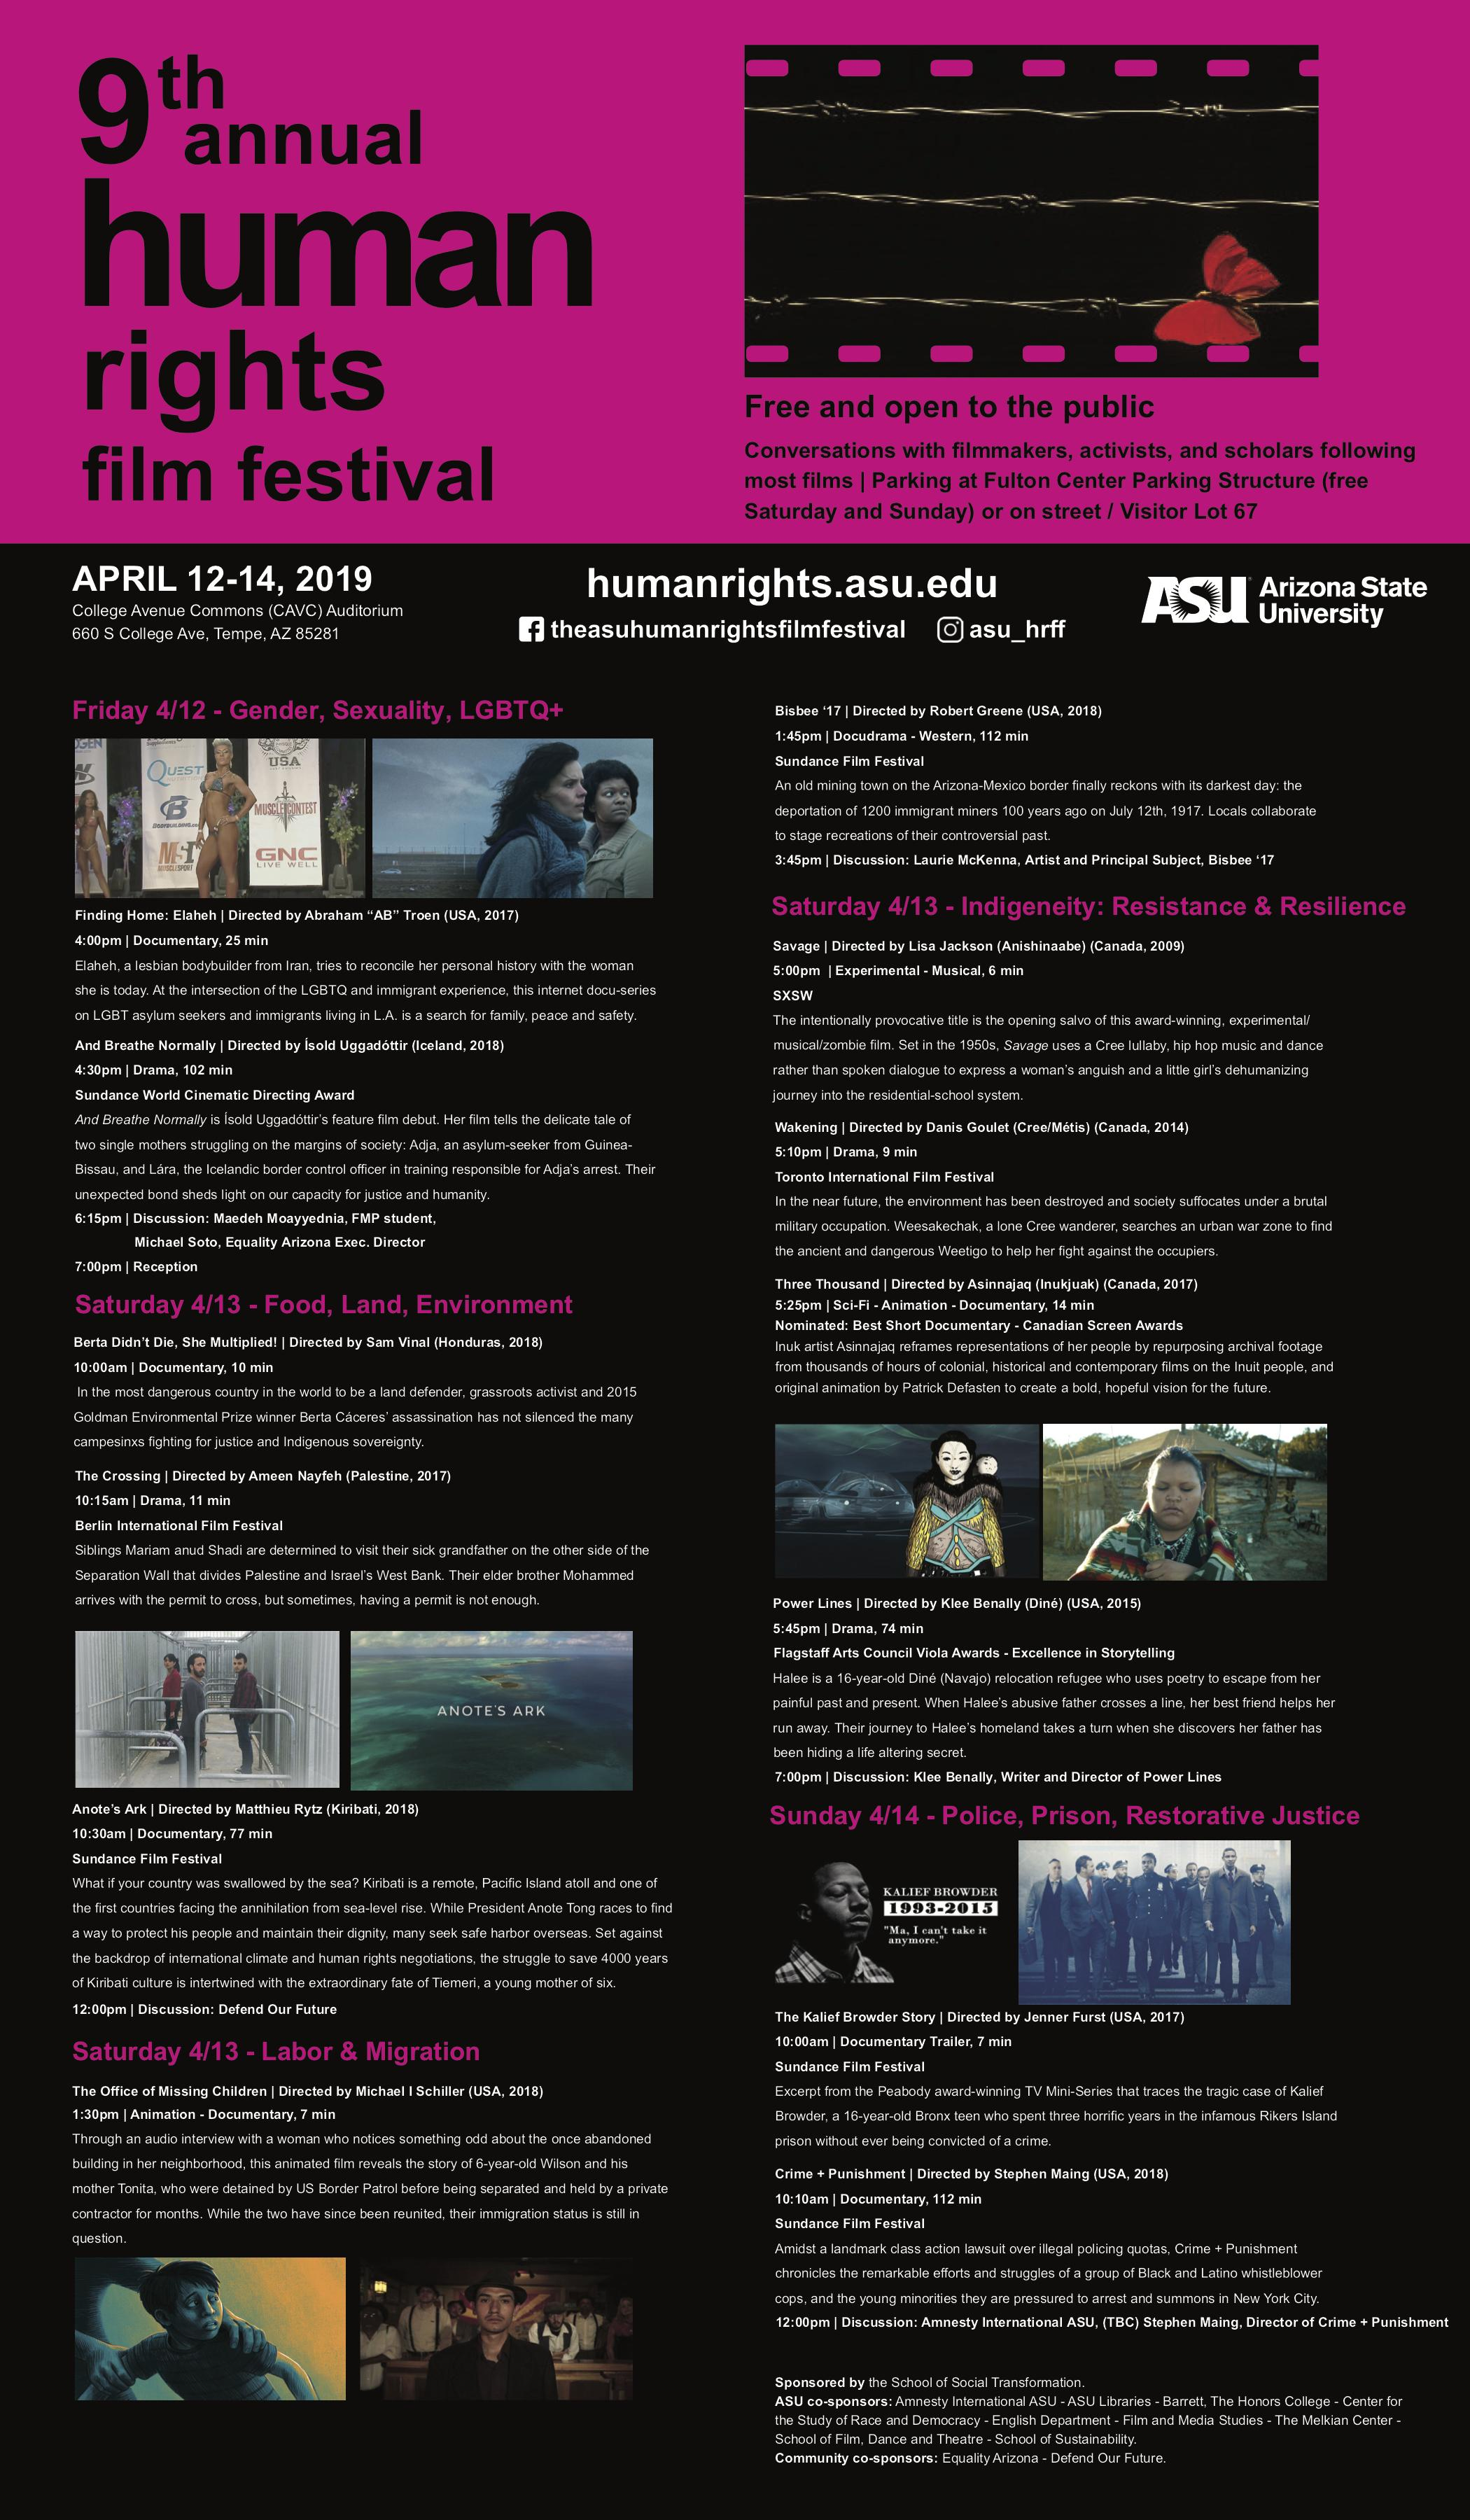 Human Rights Film Festival schedule